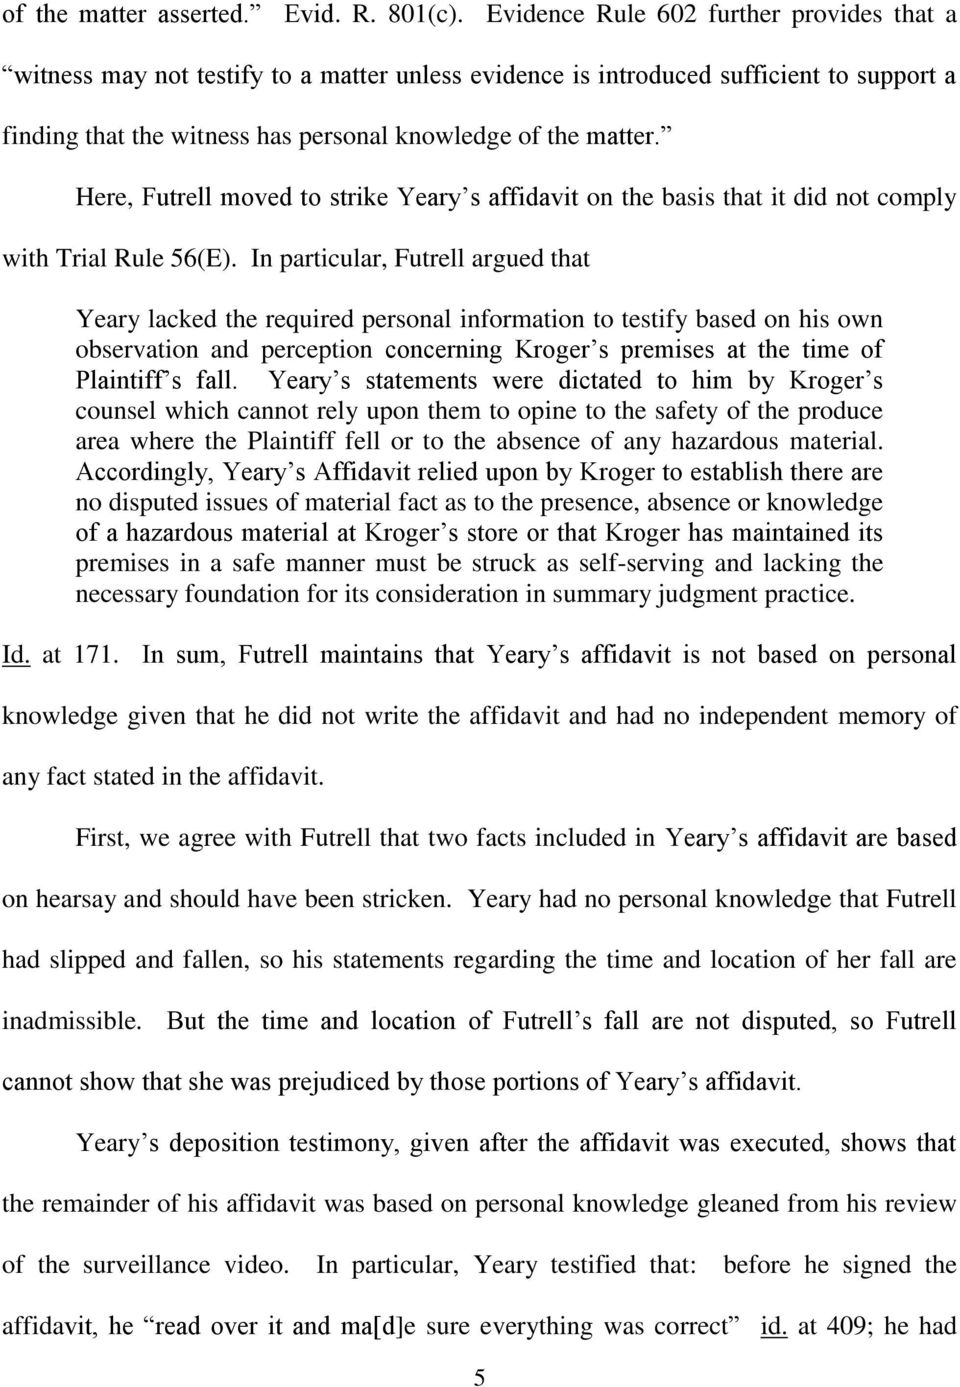 Here, Futrell moved to strike Yeary s affidavit on the basis that it did not comply with Trial Rule 56(E).